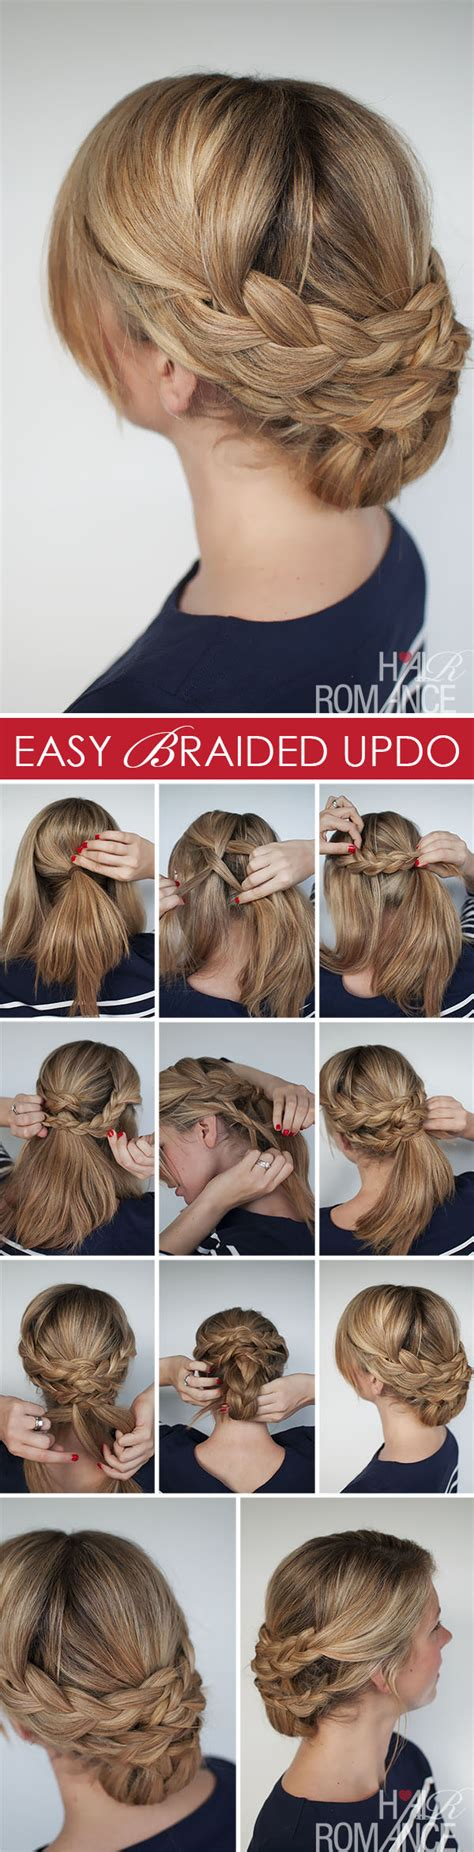 hairstyles updo how to hairstyle how to easy braided updo tutorial hair romance